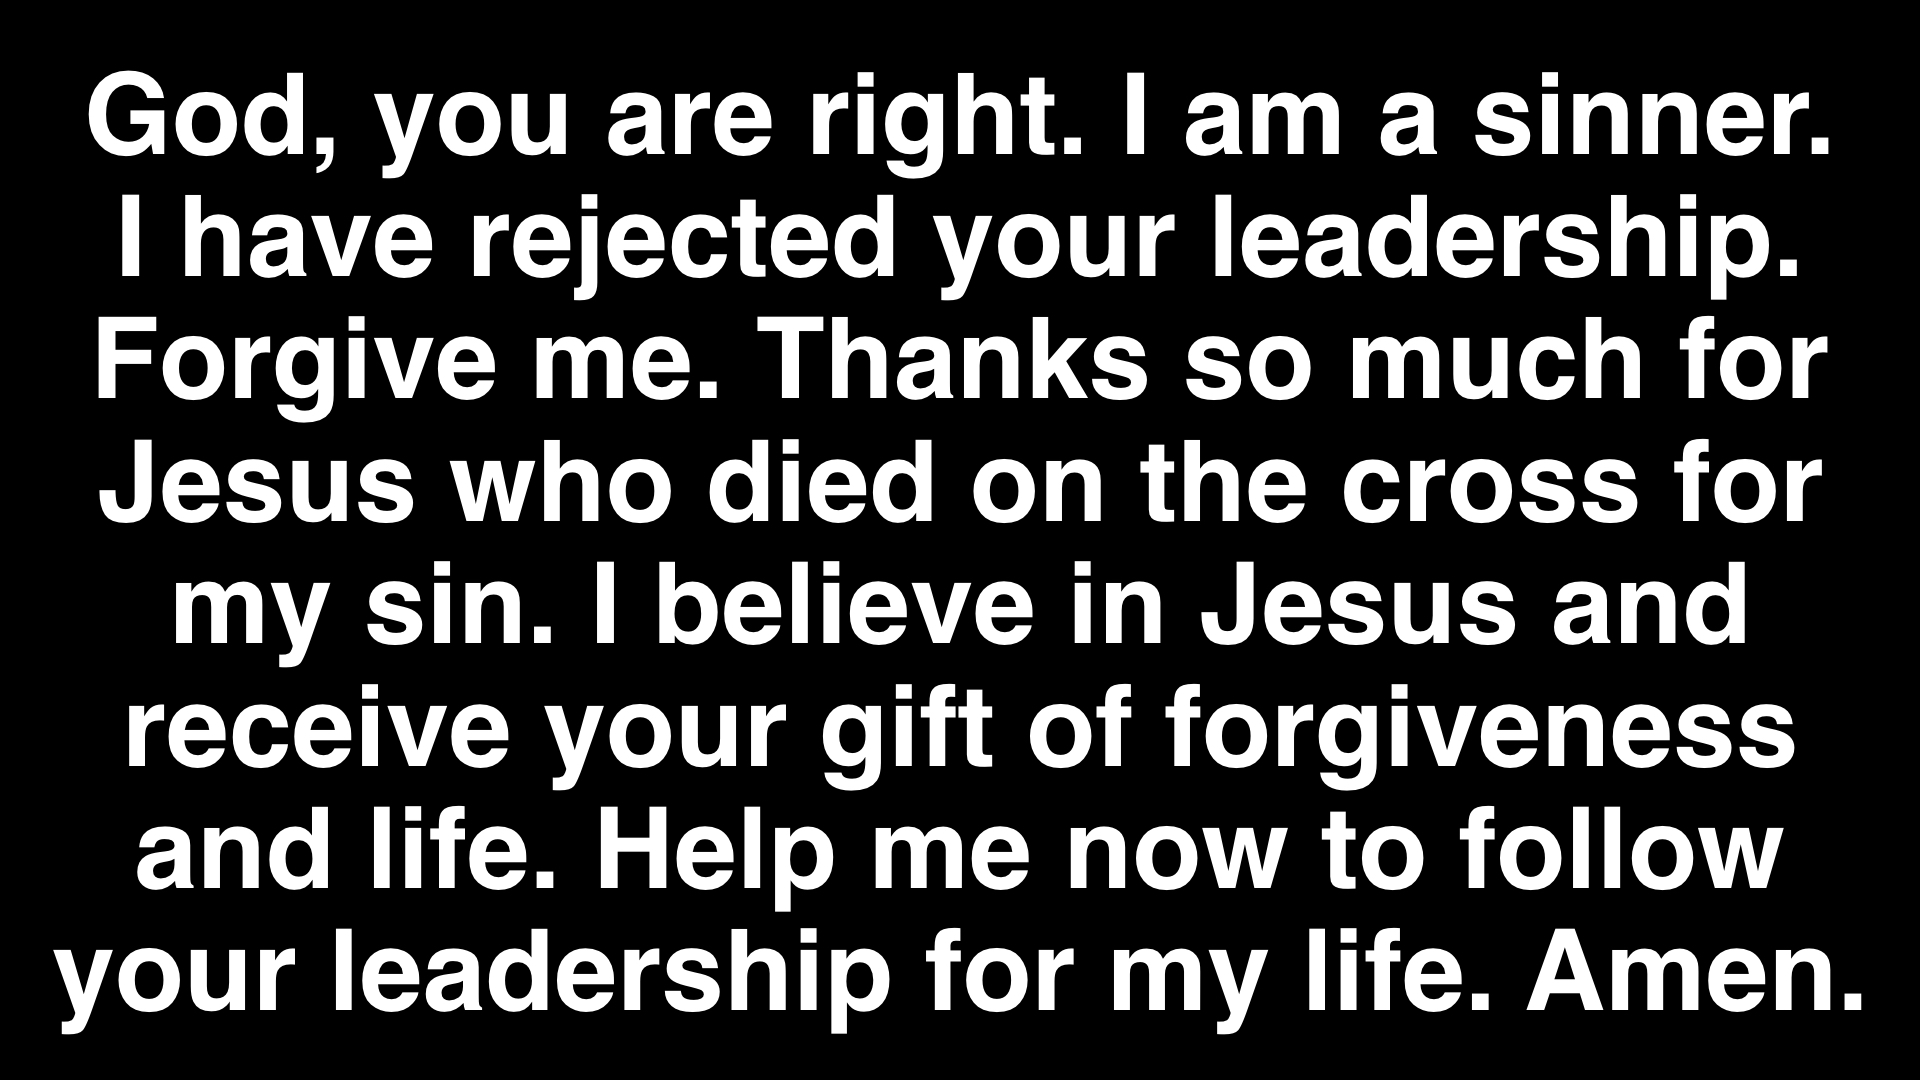 You don't have to use these words. You can use your own. Or you can use these and add your own. The point is to personally admit your sin, believe in Jesus and commit to follow God's leadership for your life.